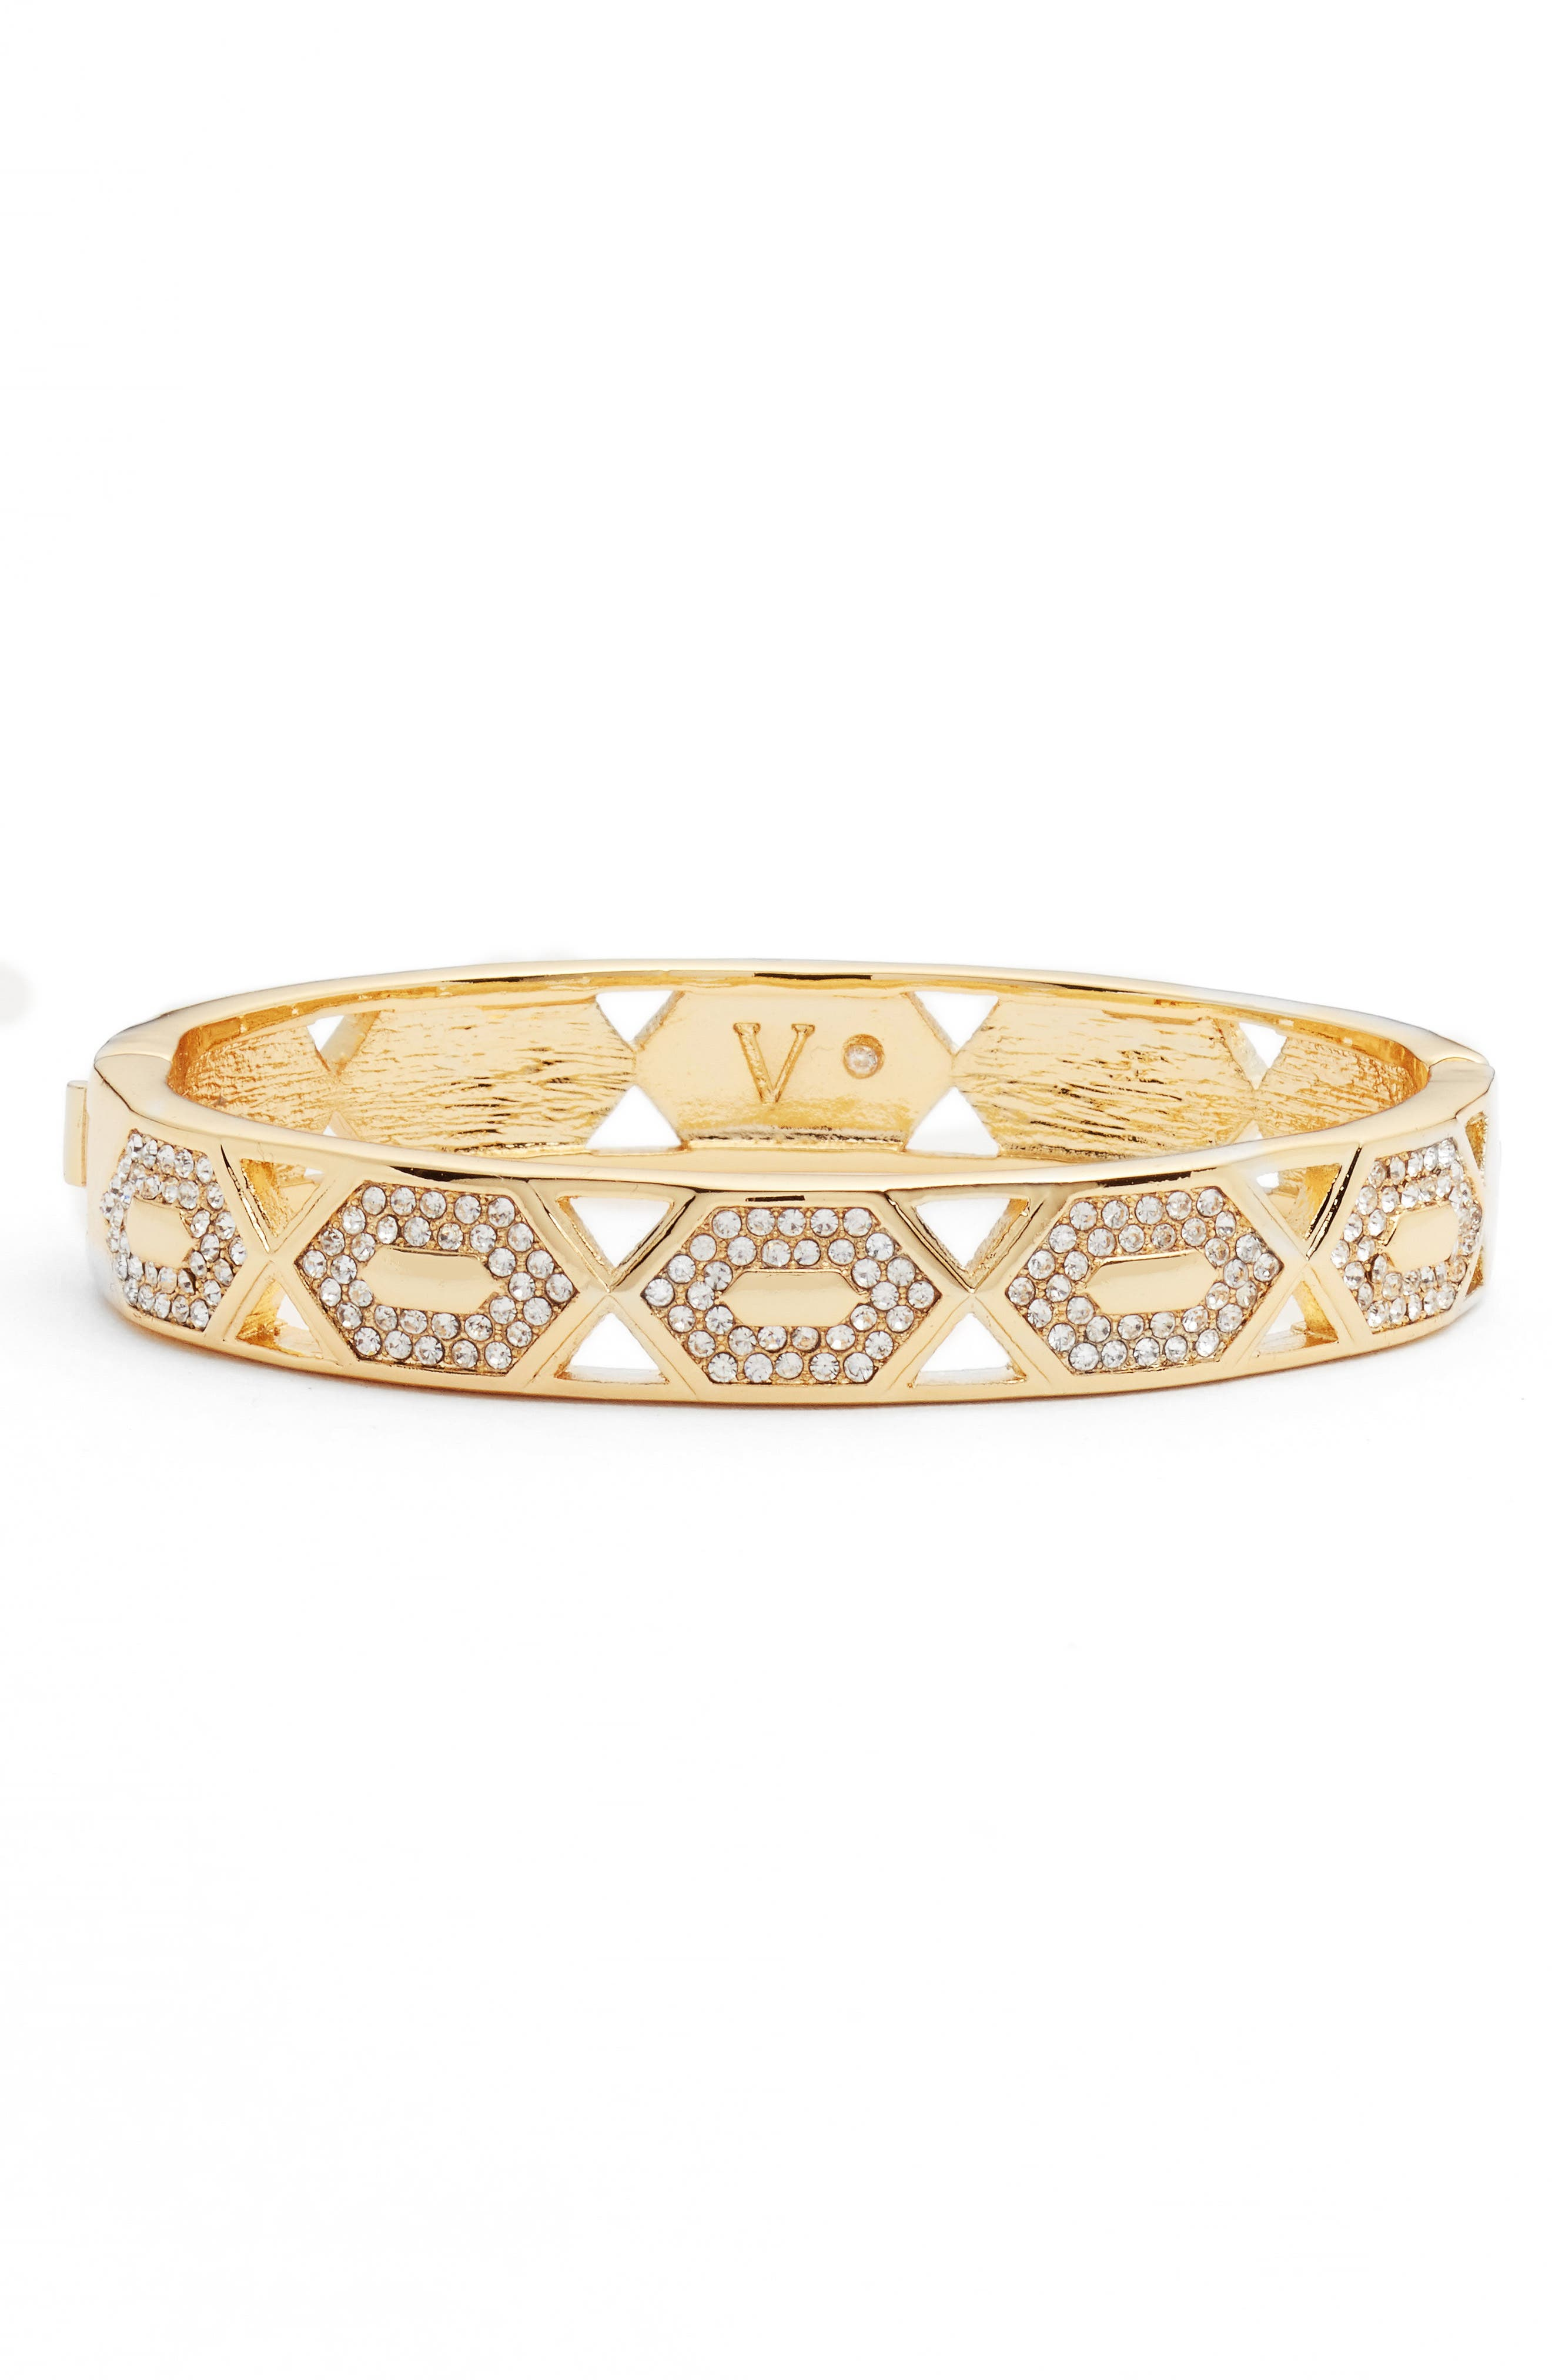 Alternate Image 1 Selected - Vince Camuto Pavé Crystal Bangle